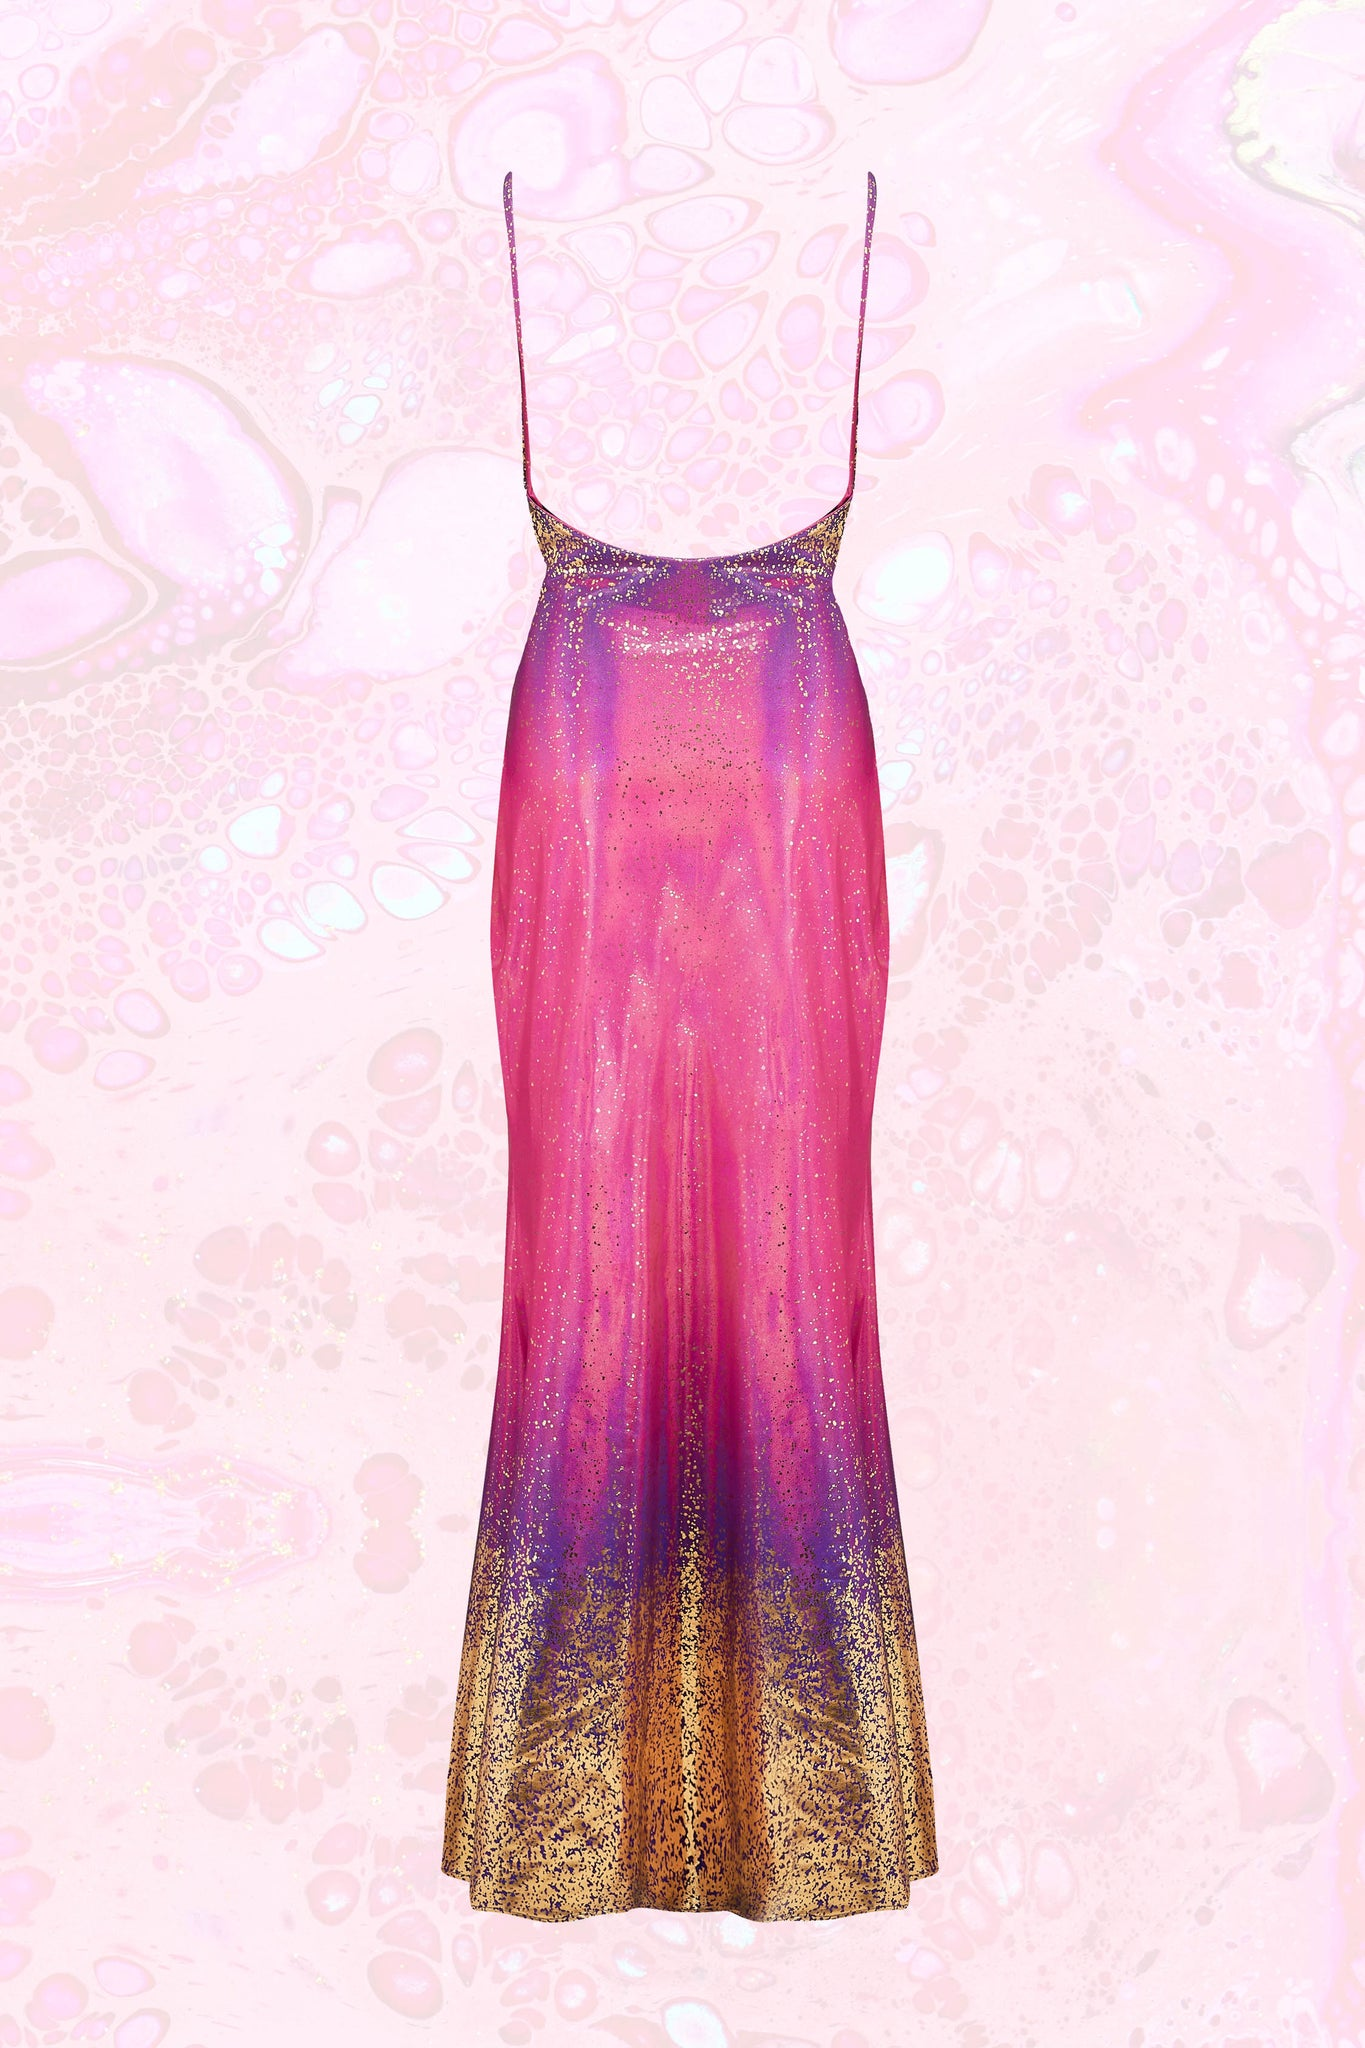 Körpermitose Pink, Purple and Gold Iridescent Fishtail Dress